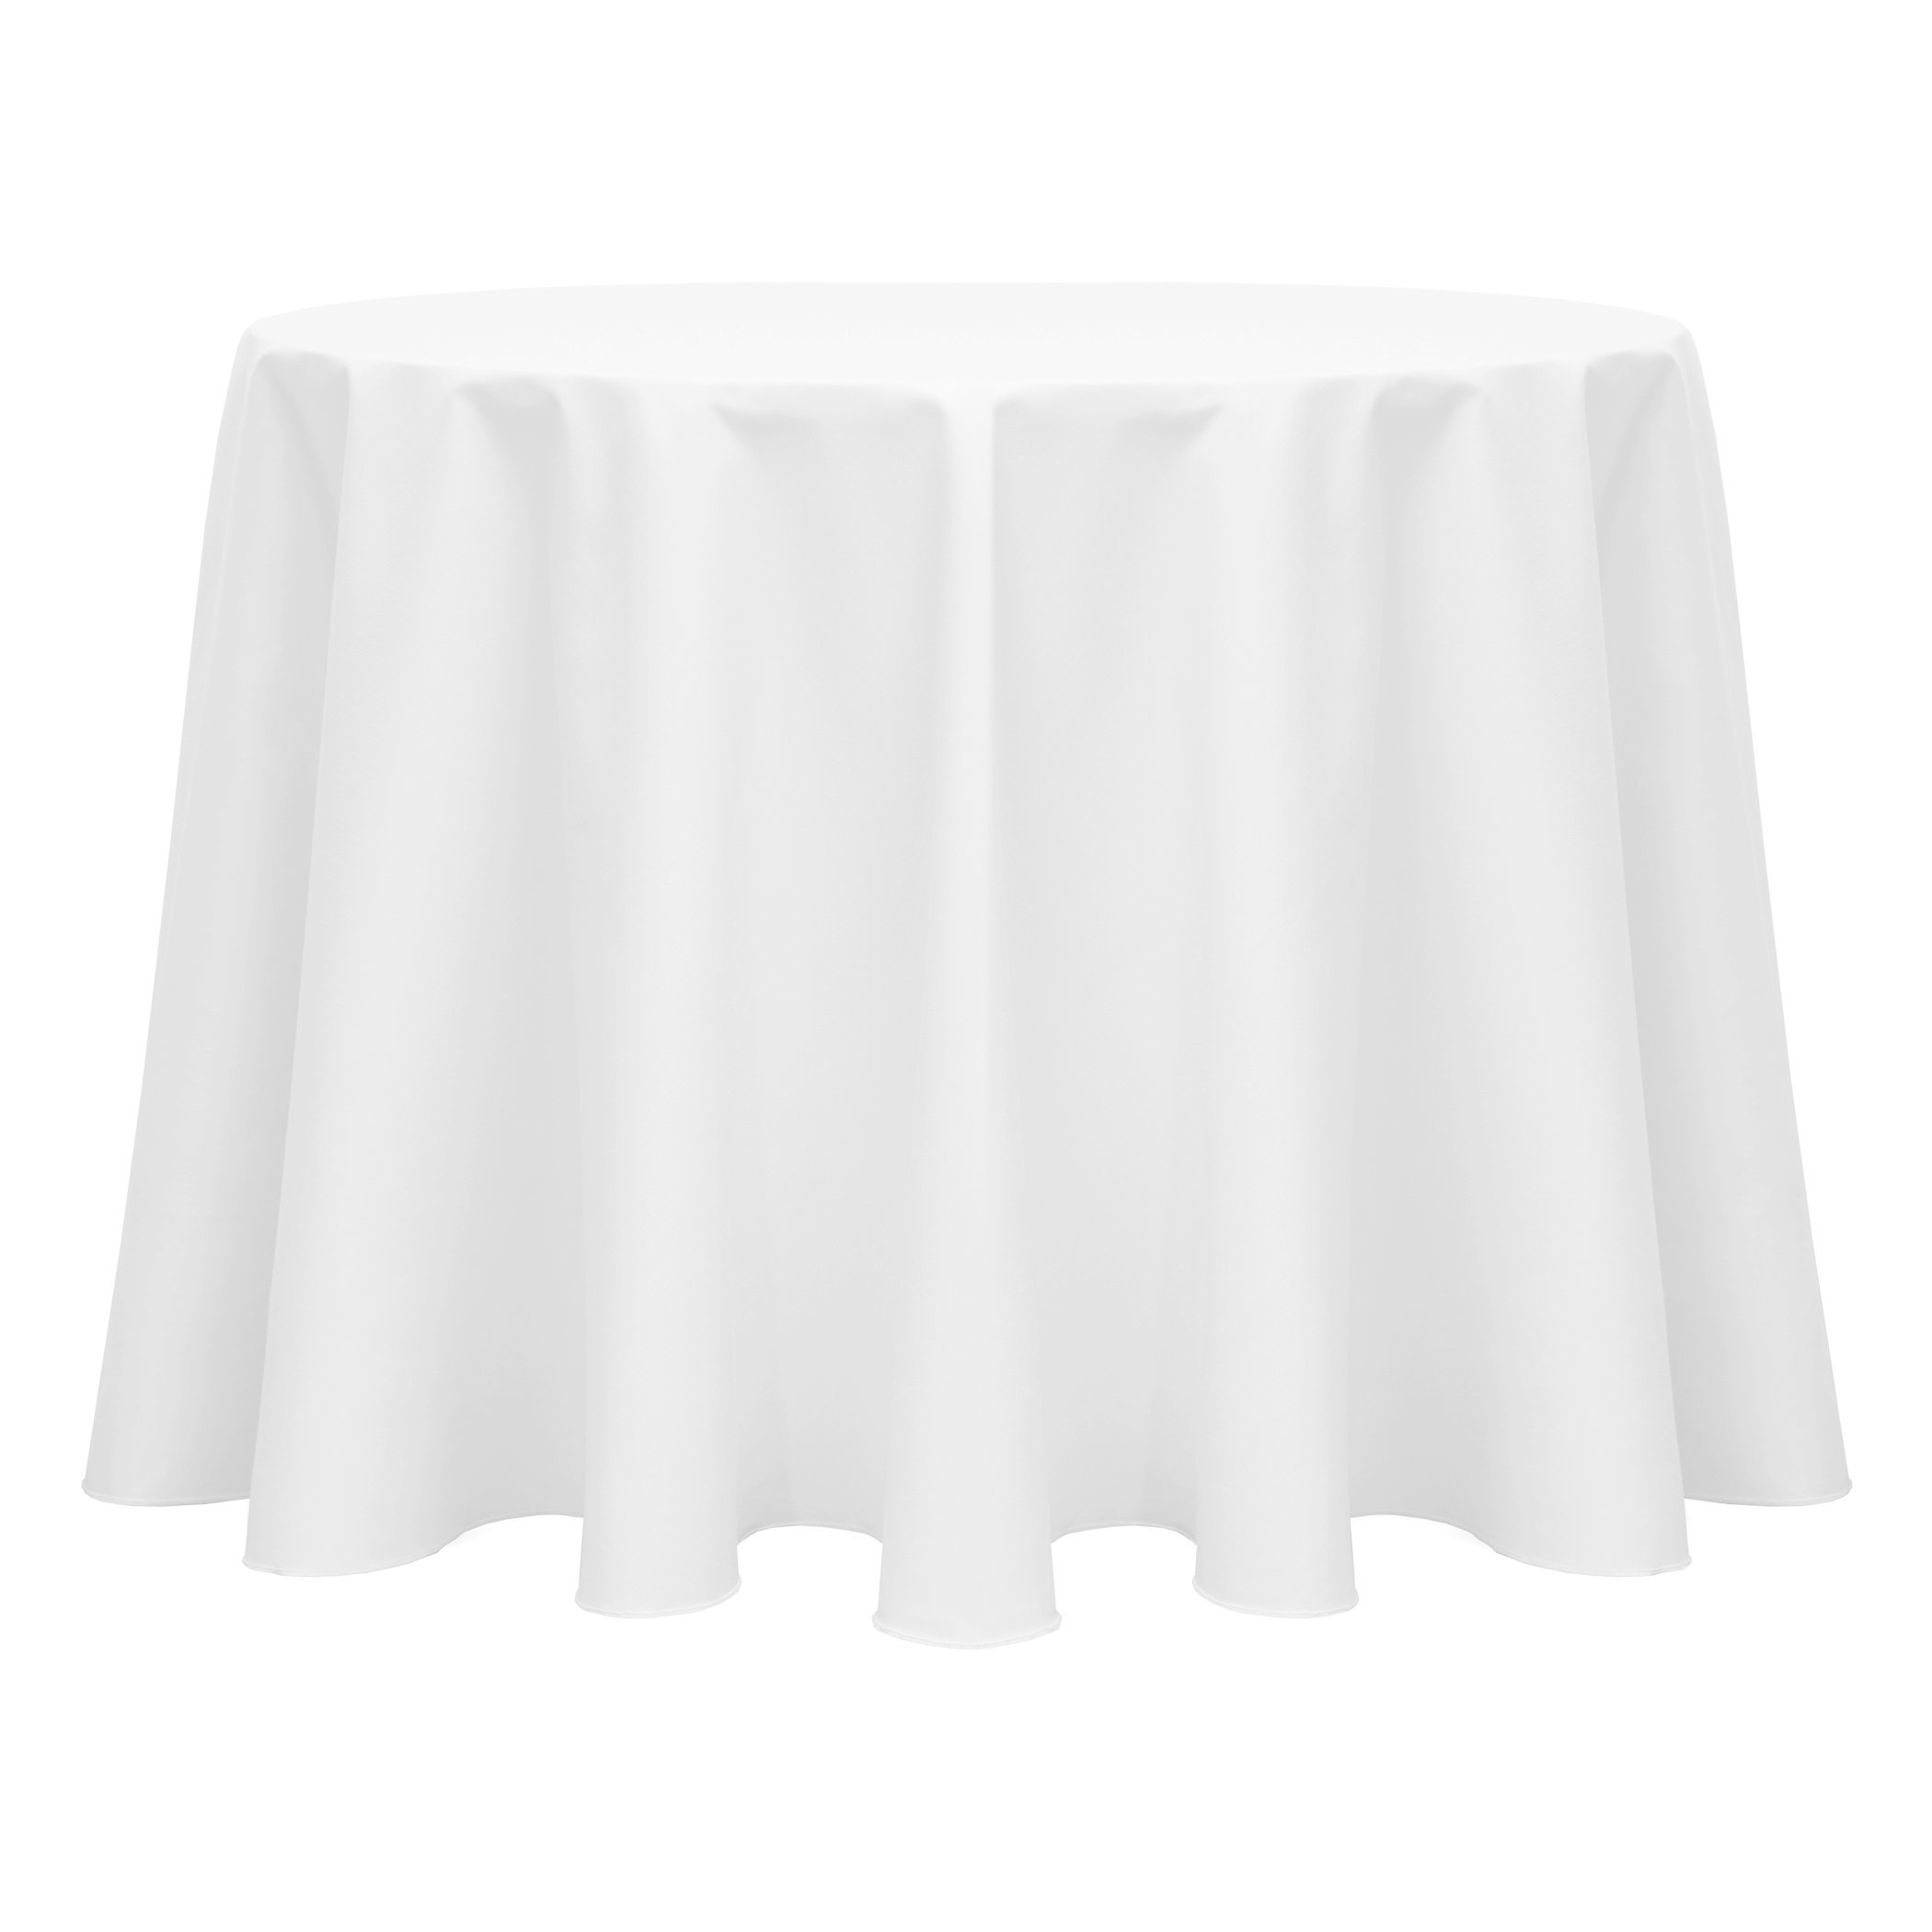 Ultimate Textile (5 Pack) Poly-cotton Twill 120-Inch Round Tablecloth - for Restaurant and Catering, Hotel or Home Dining use, White